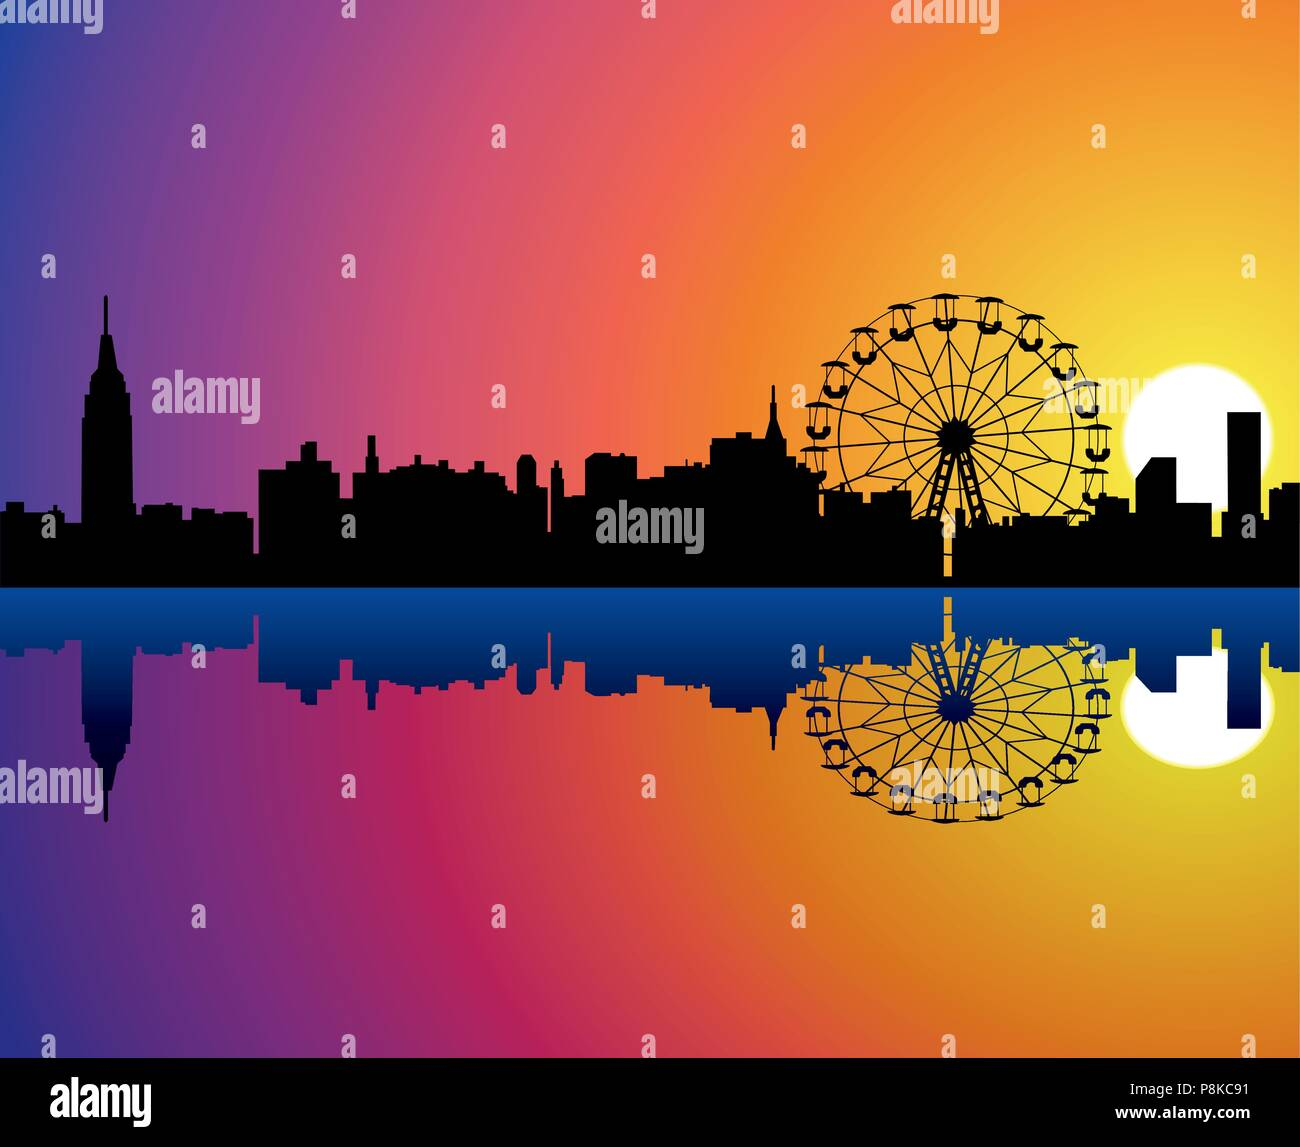 vector city background with reflection in water - Stock Vector